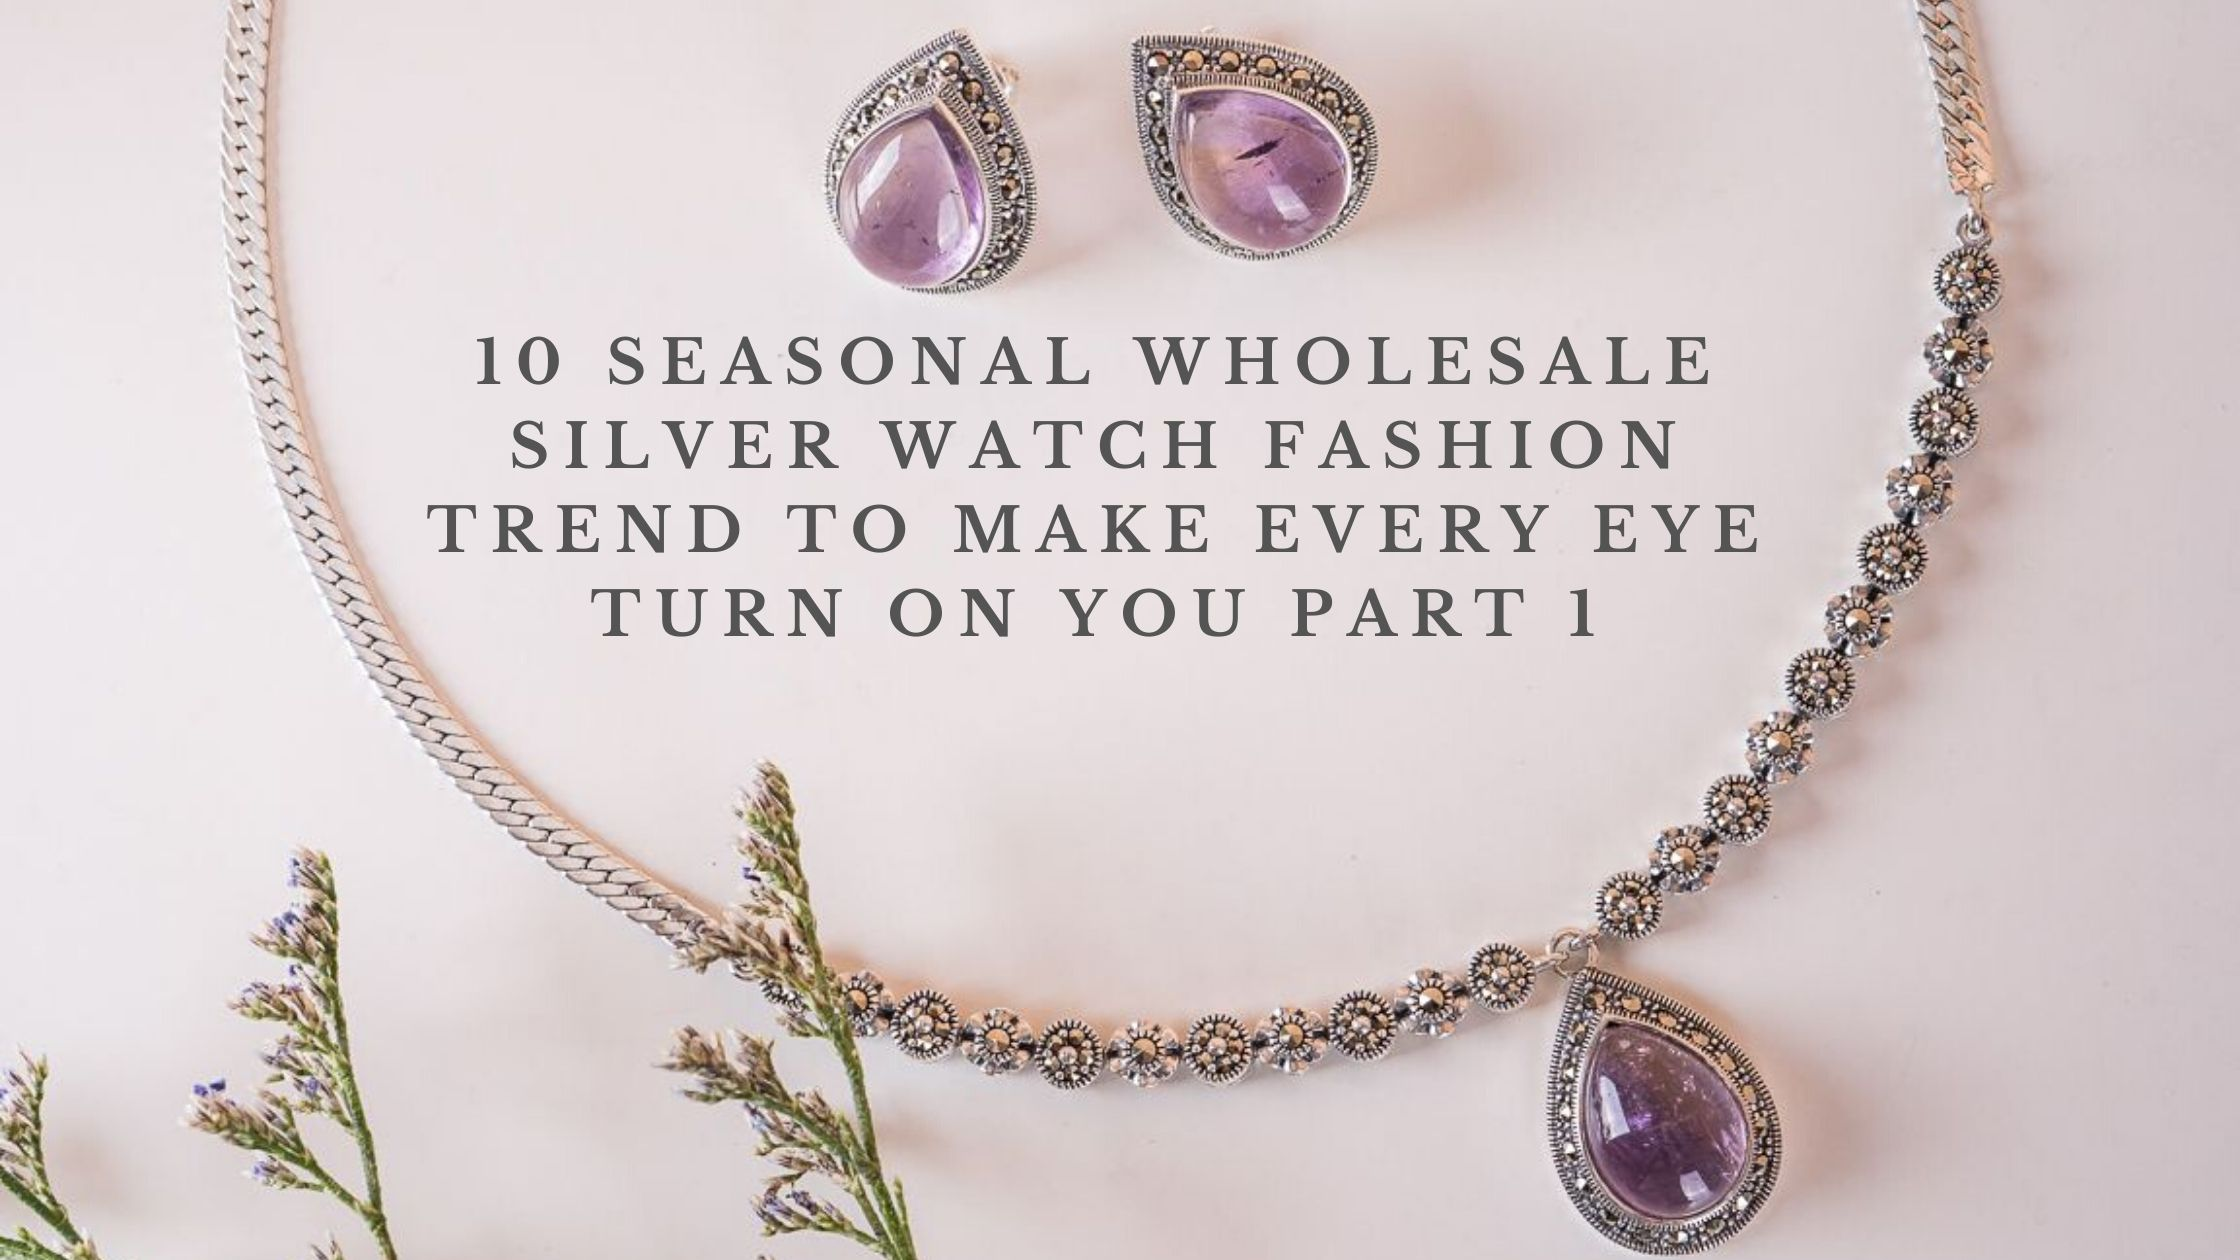 10 SEASONAL WHOLESALE SILVER WATCH FASHION TREND TO MAKE EVERY EYE TURN ON YOU PART 1